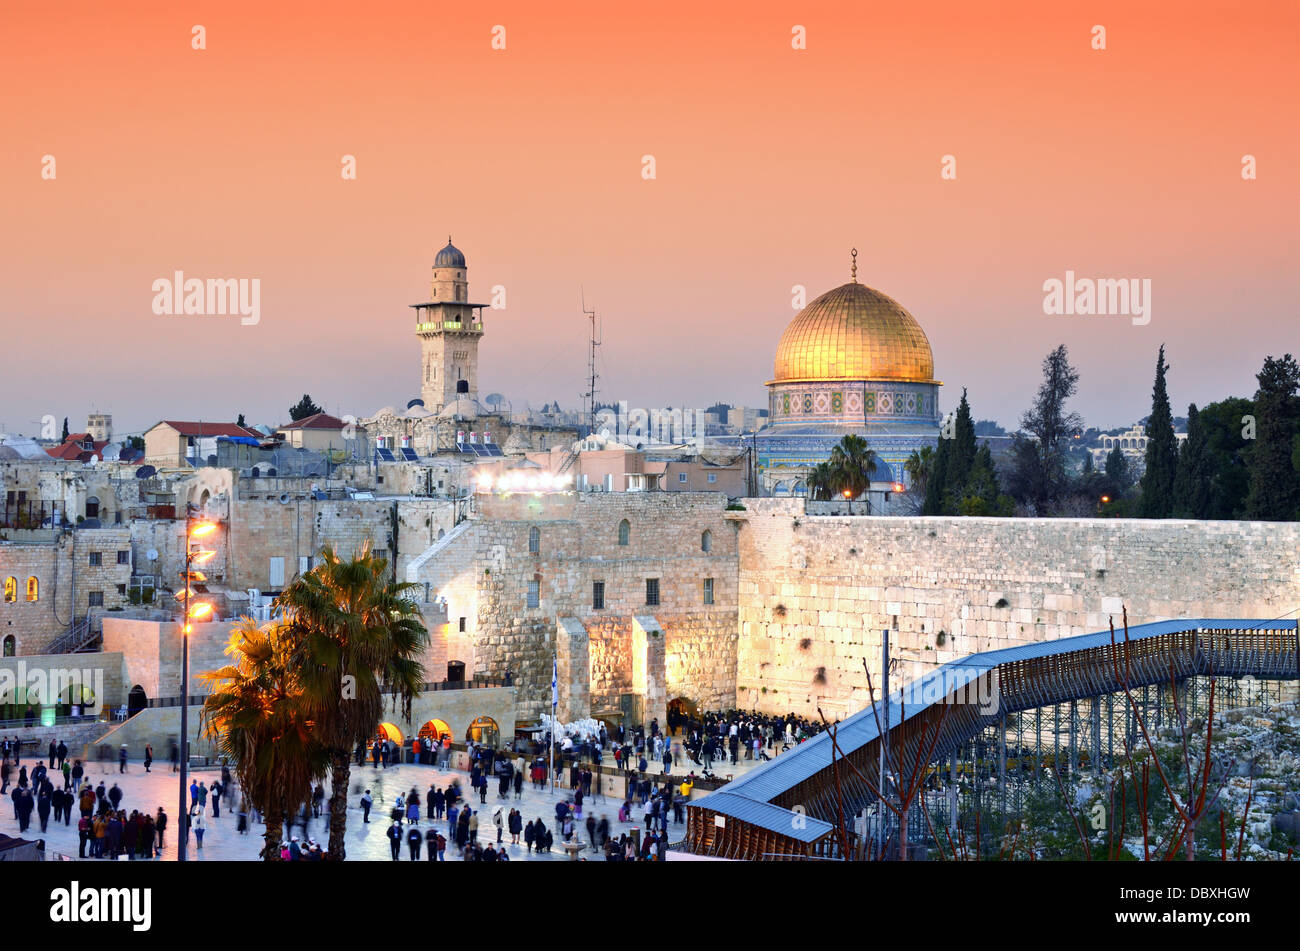 Skyline of the Old City at he Western Wall and Temple Mount in Jerusalem, Israel. Stock Photo